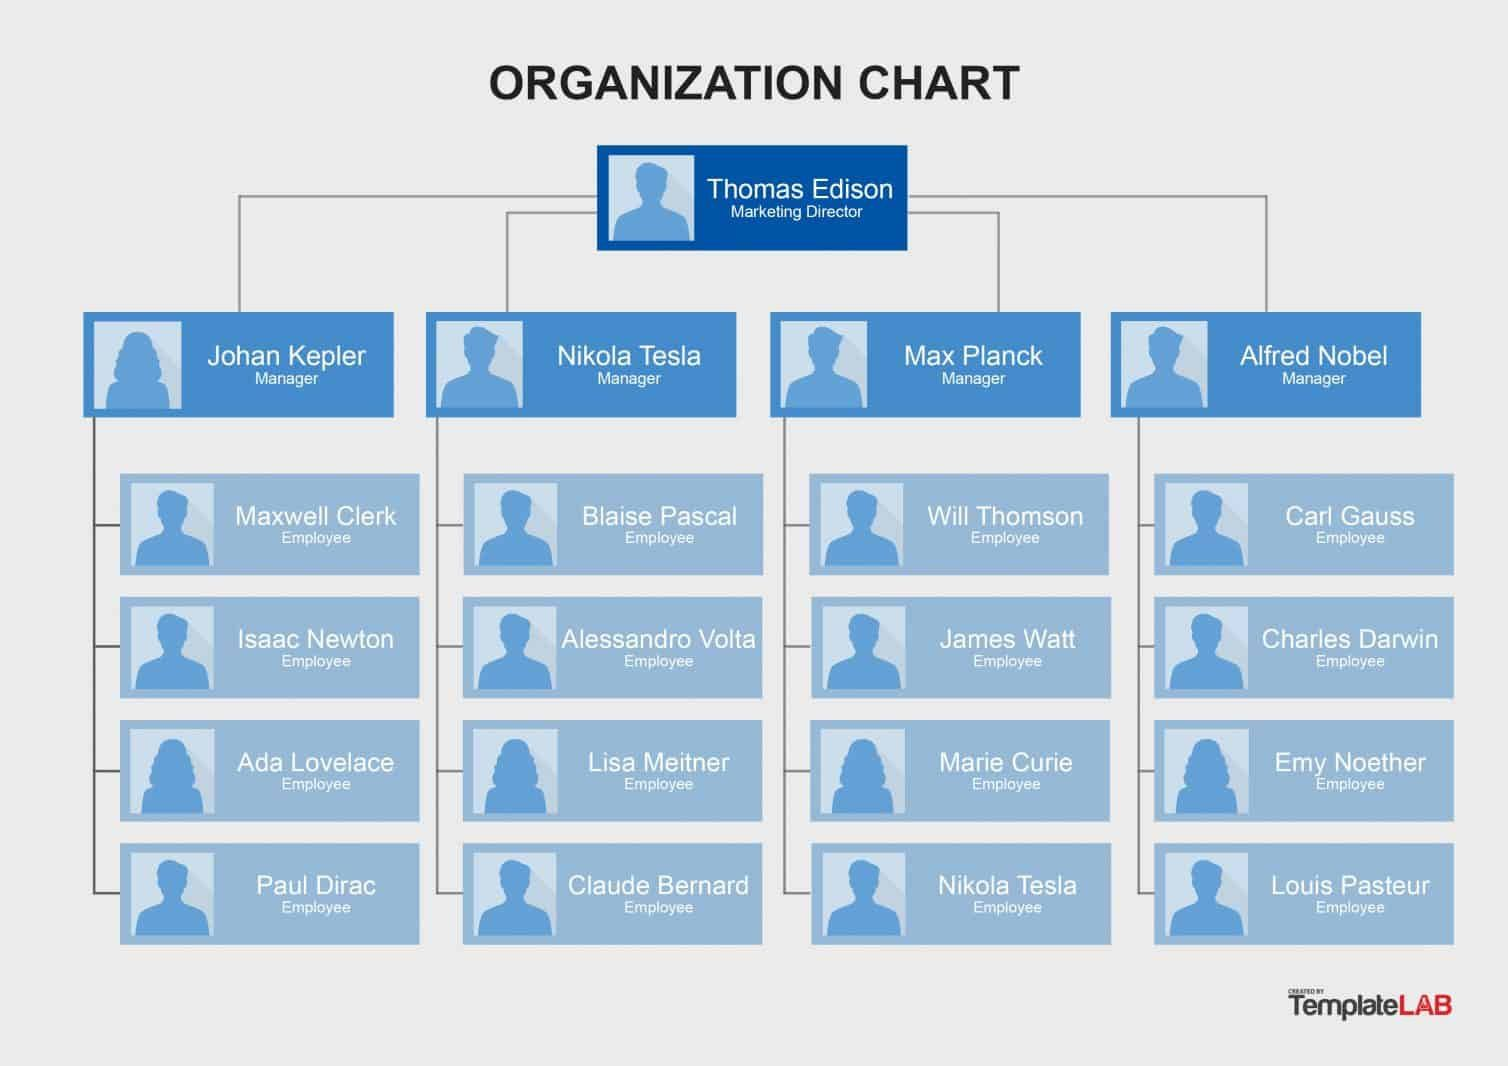 009 Rare Organizational Chart Template Excel Image  Org Download Free 2010Full